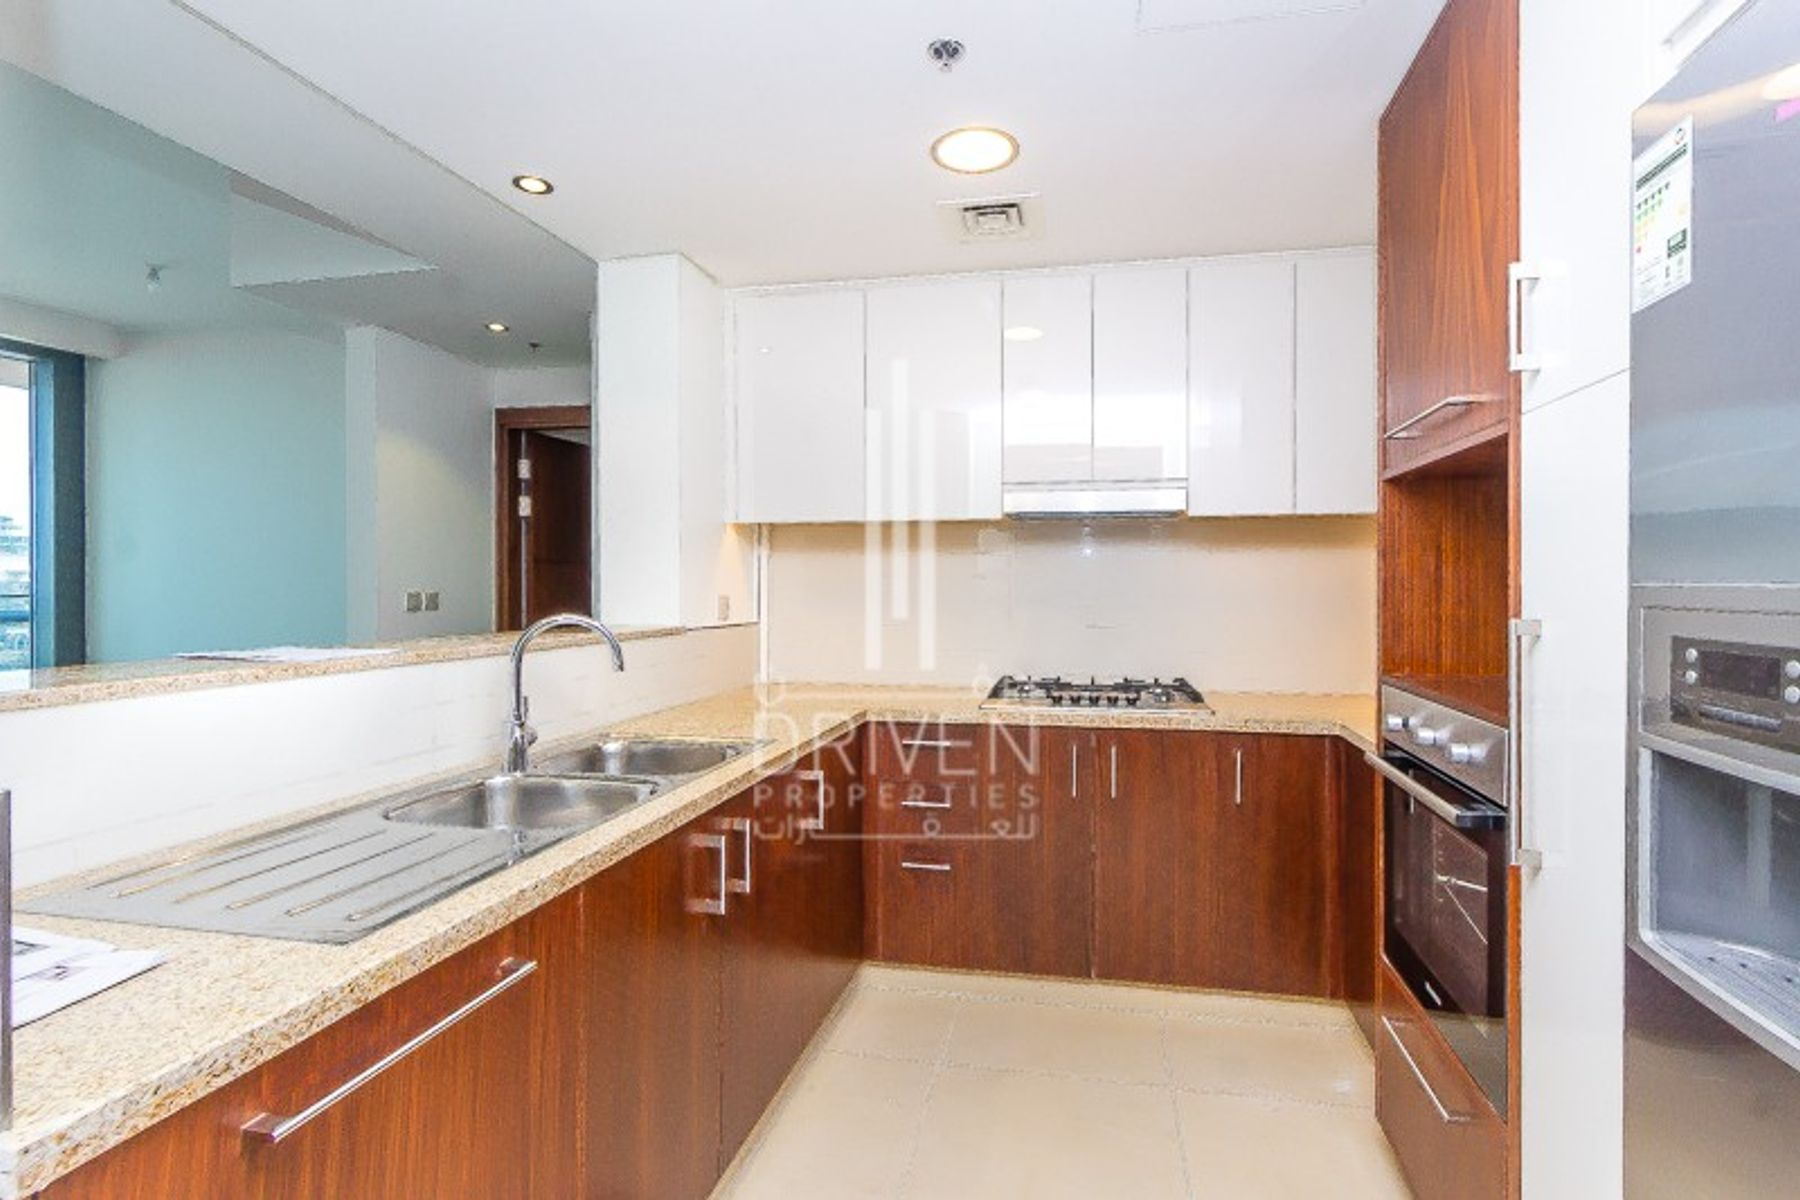 2 Bedroom | 01 Layout | SZR and Sea View